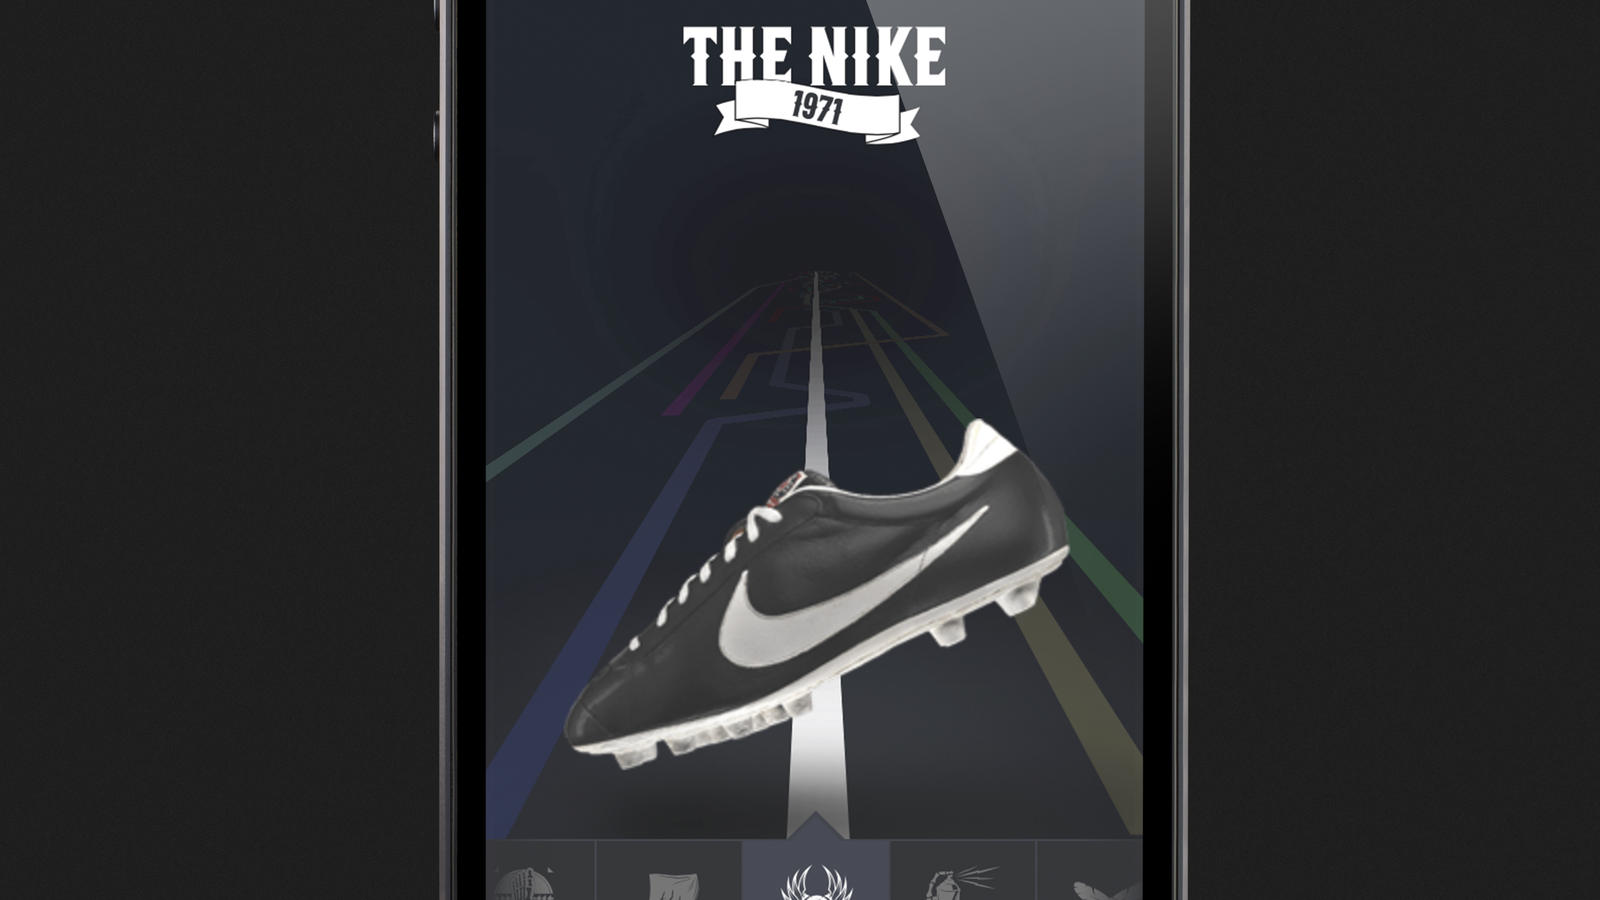 THE NIKE SCREEN SHOT